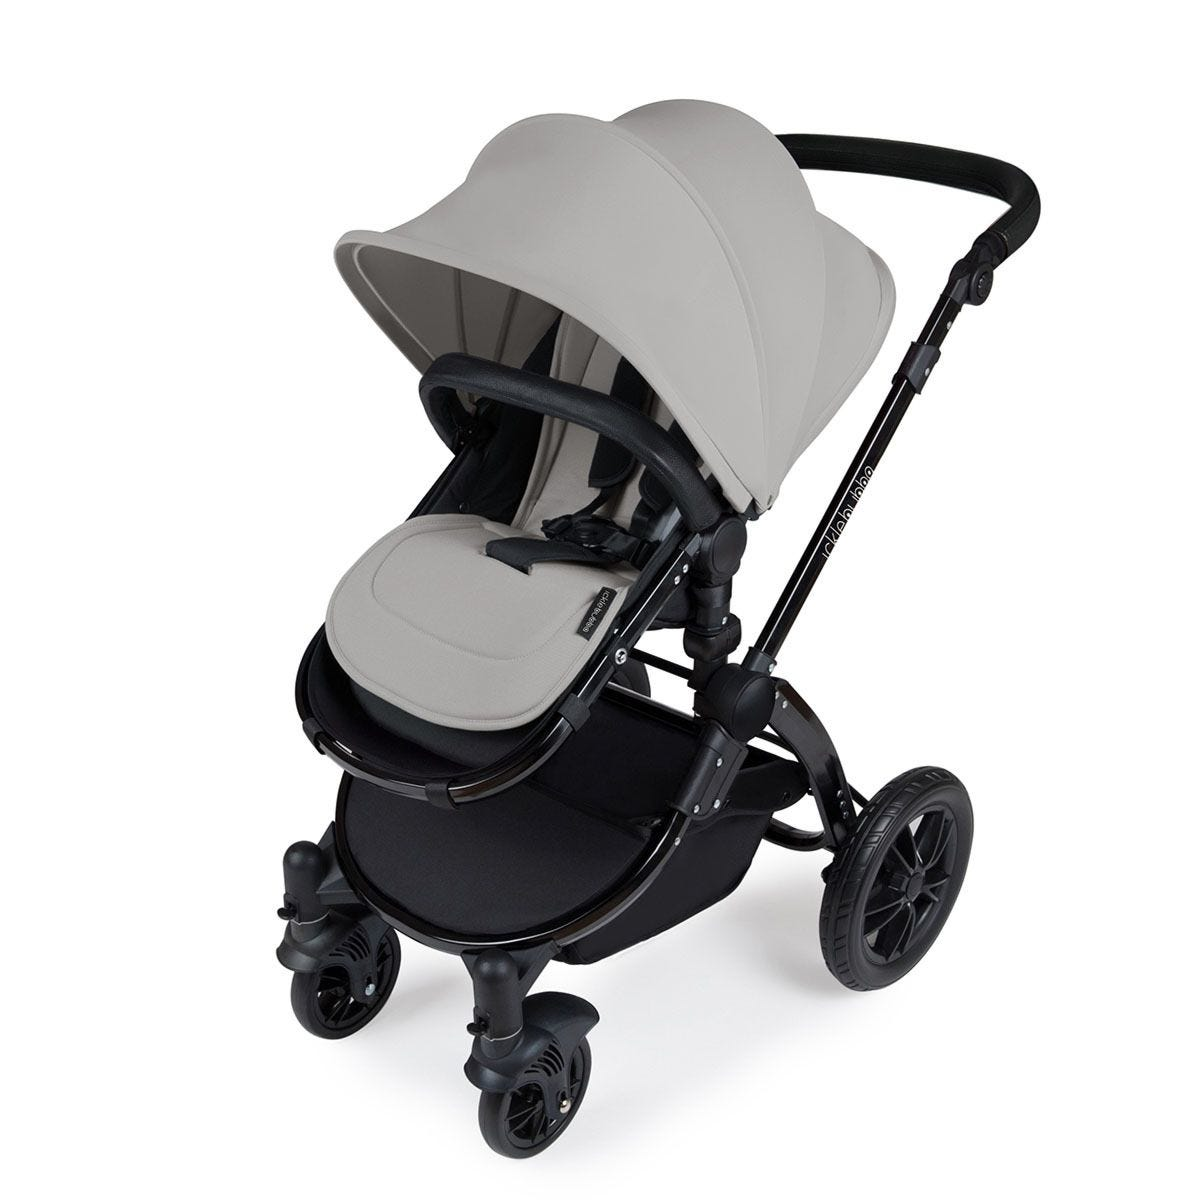 Ickle Bubba Stomp V3 i-Size Travel System with Isofix Base - Silver on Black with Black Handles